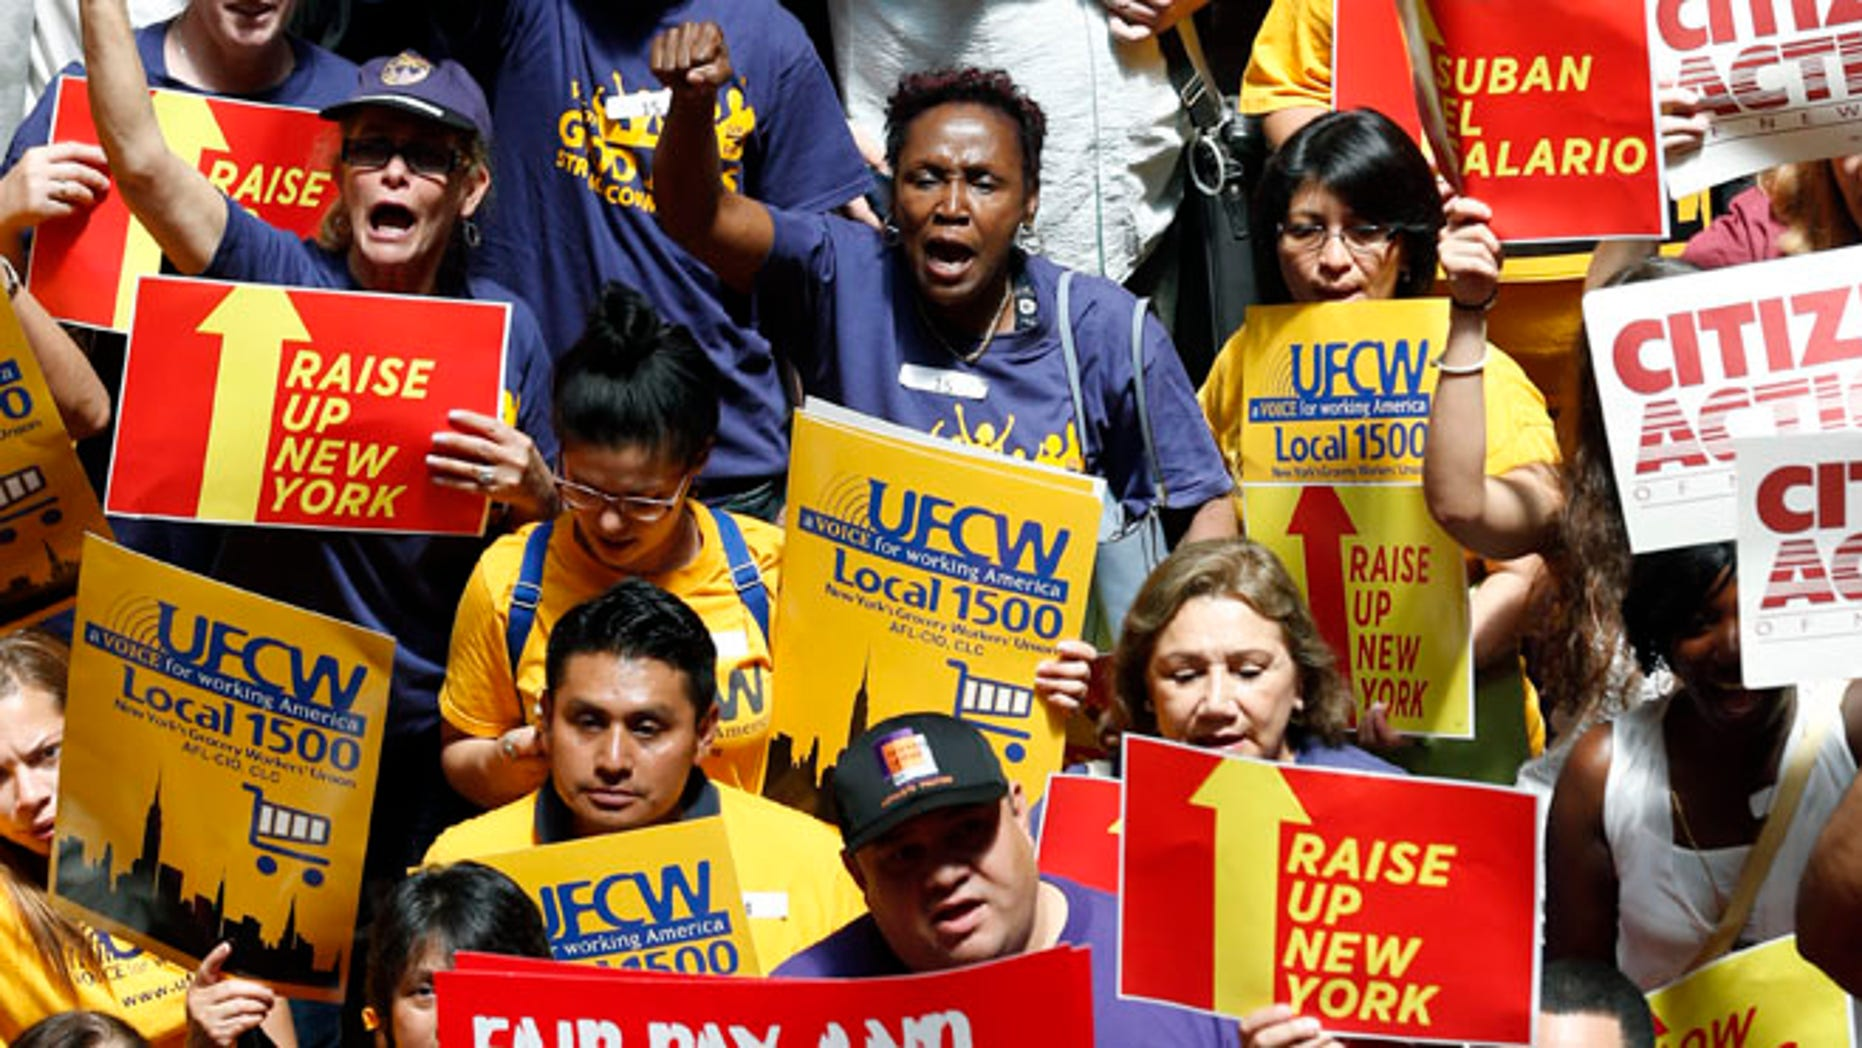 FILE: June 17, 2014: Protesters rally for an increase in the minimum wage on the Great Western Staircase at the capitol, in Albany, N.Y.